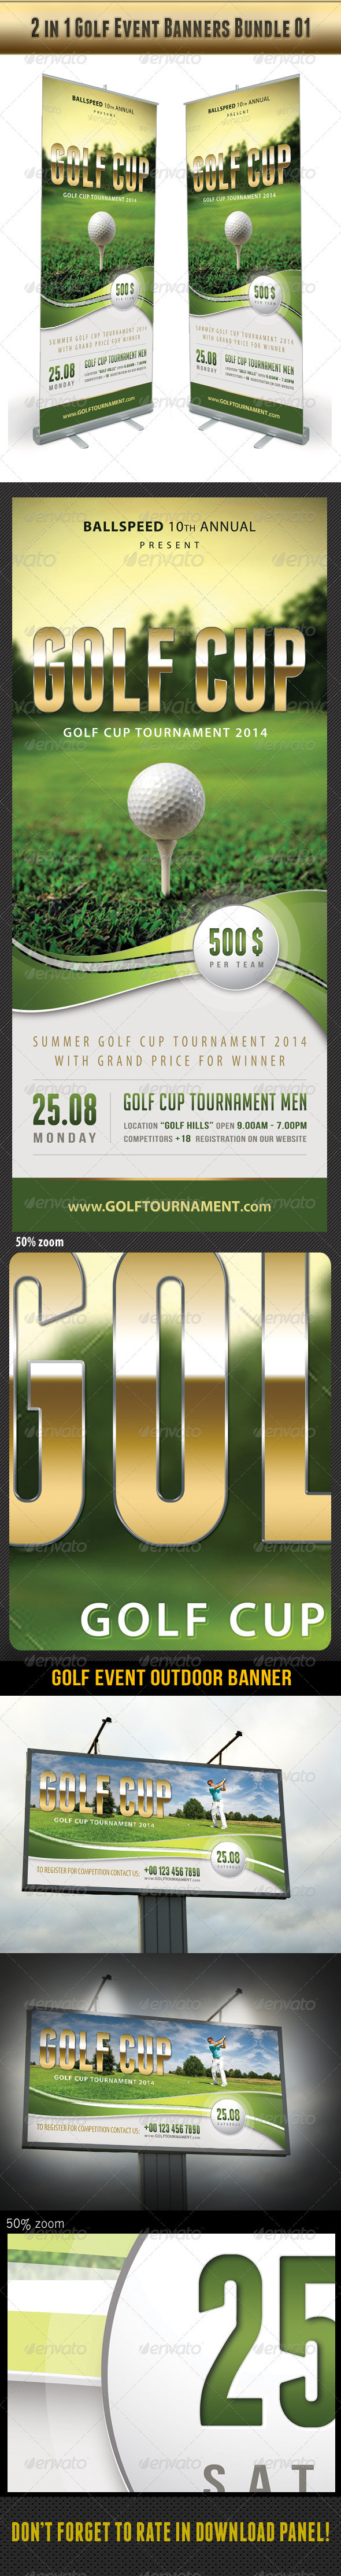 GraphicRiver 2 in 1 Golf Event Banners Bundle 01 8134452